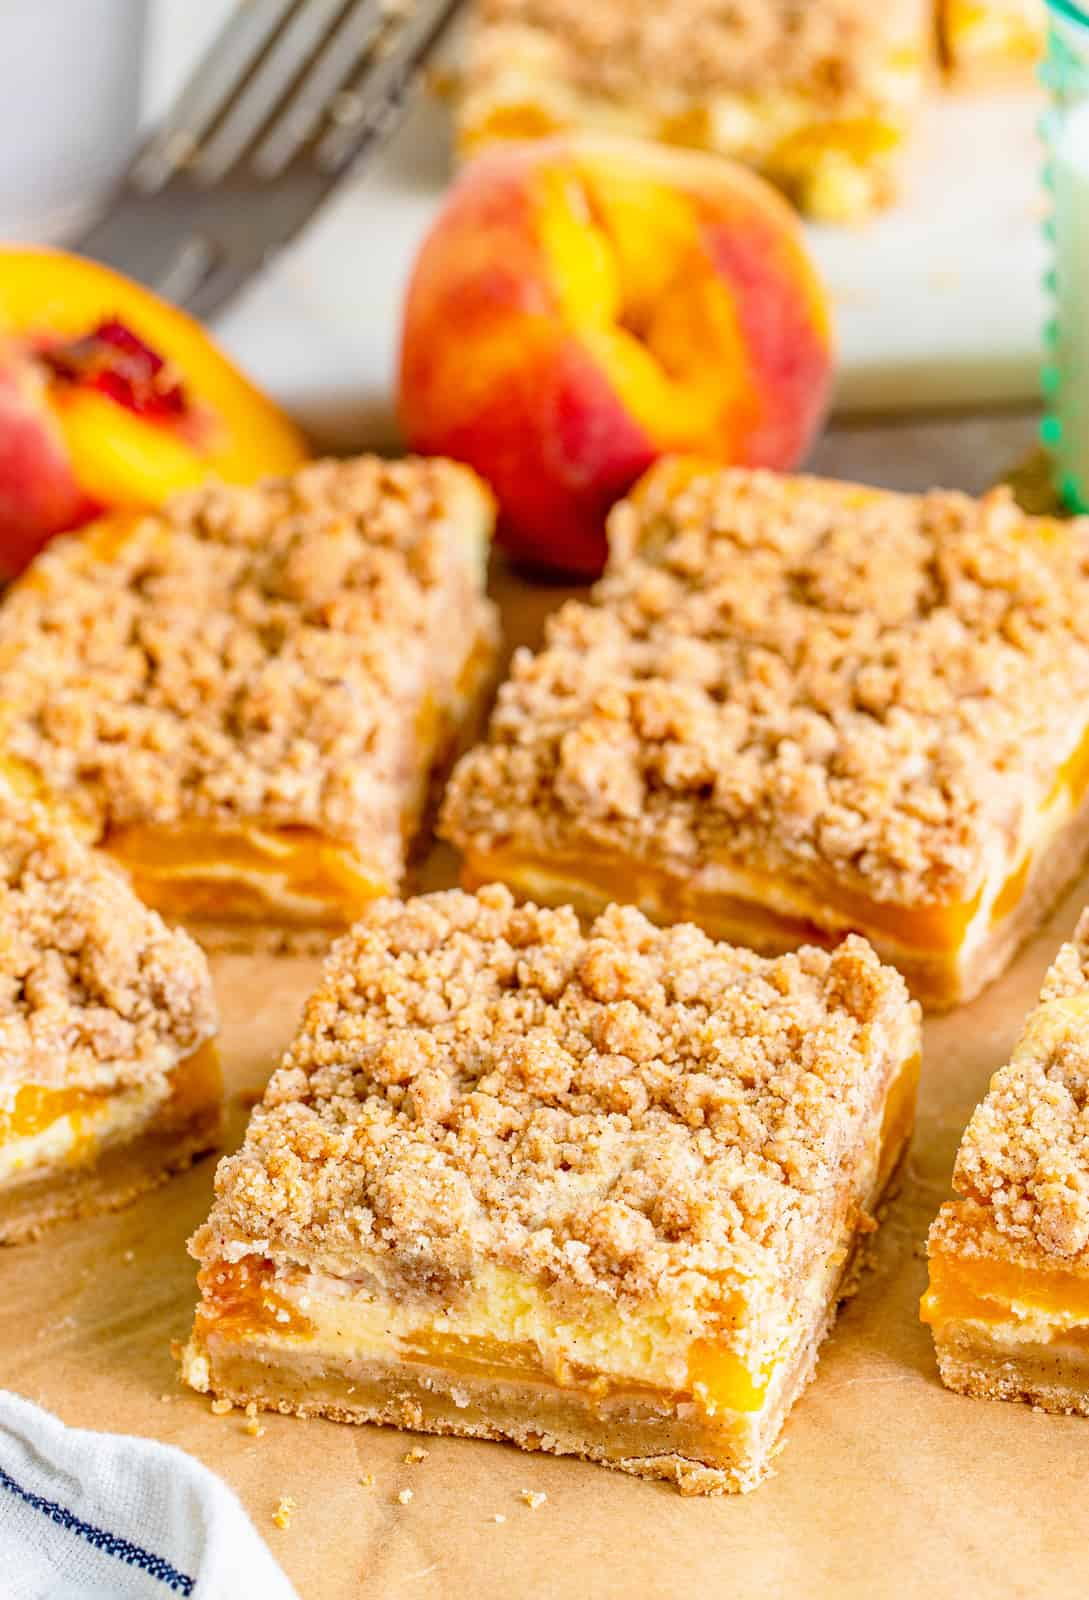 Cheesecake Bars sitting on brown parchment paper